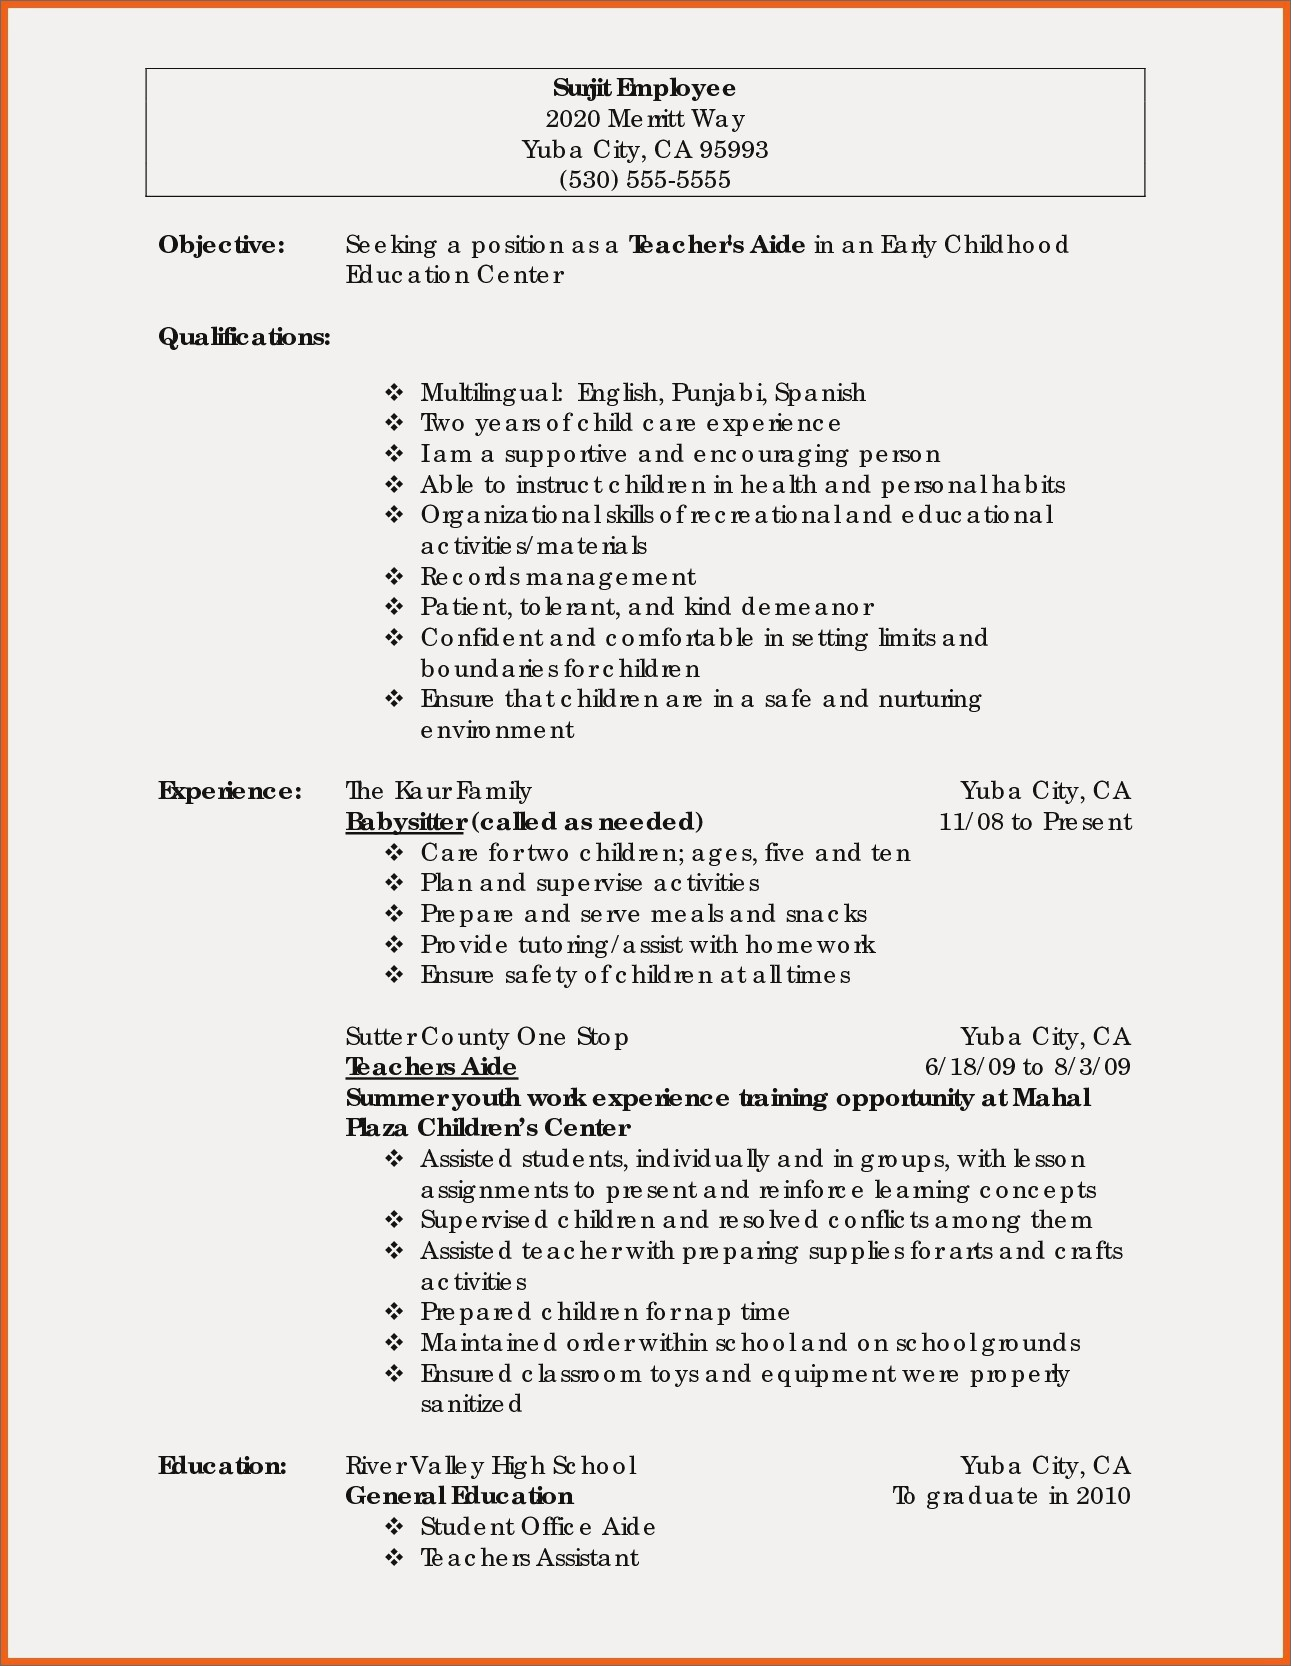 Child Care Skills for Resume - Early Childhood Education Resume Samples New Teacher Resume Example